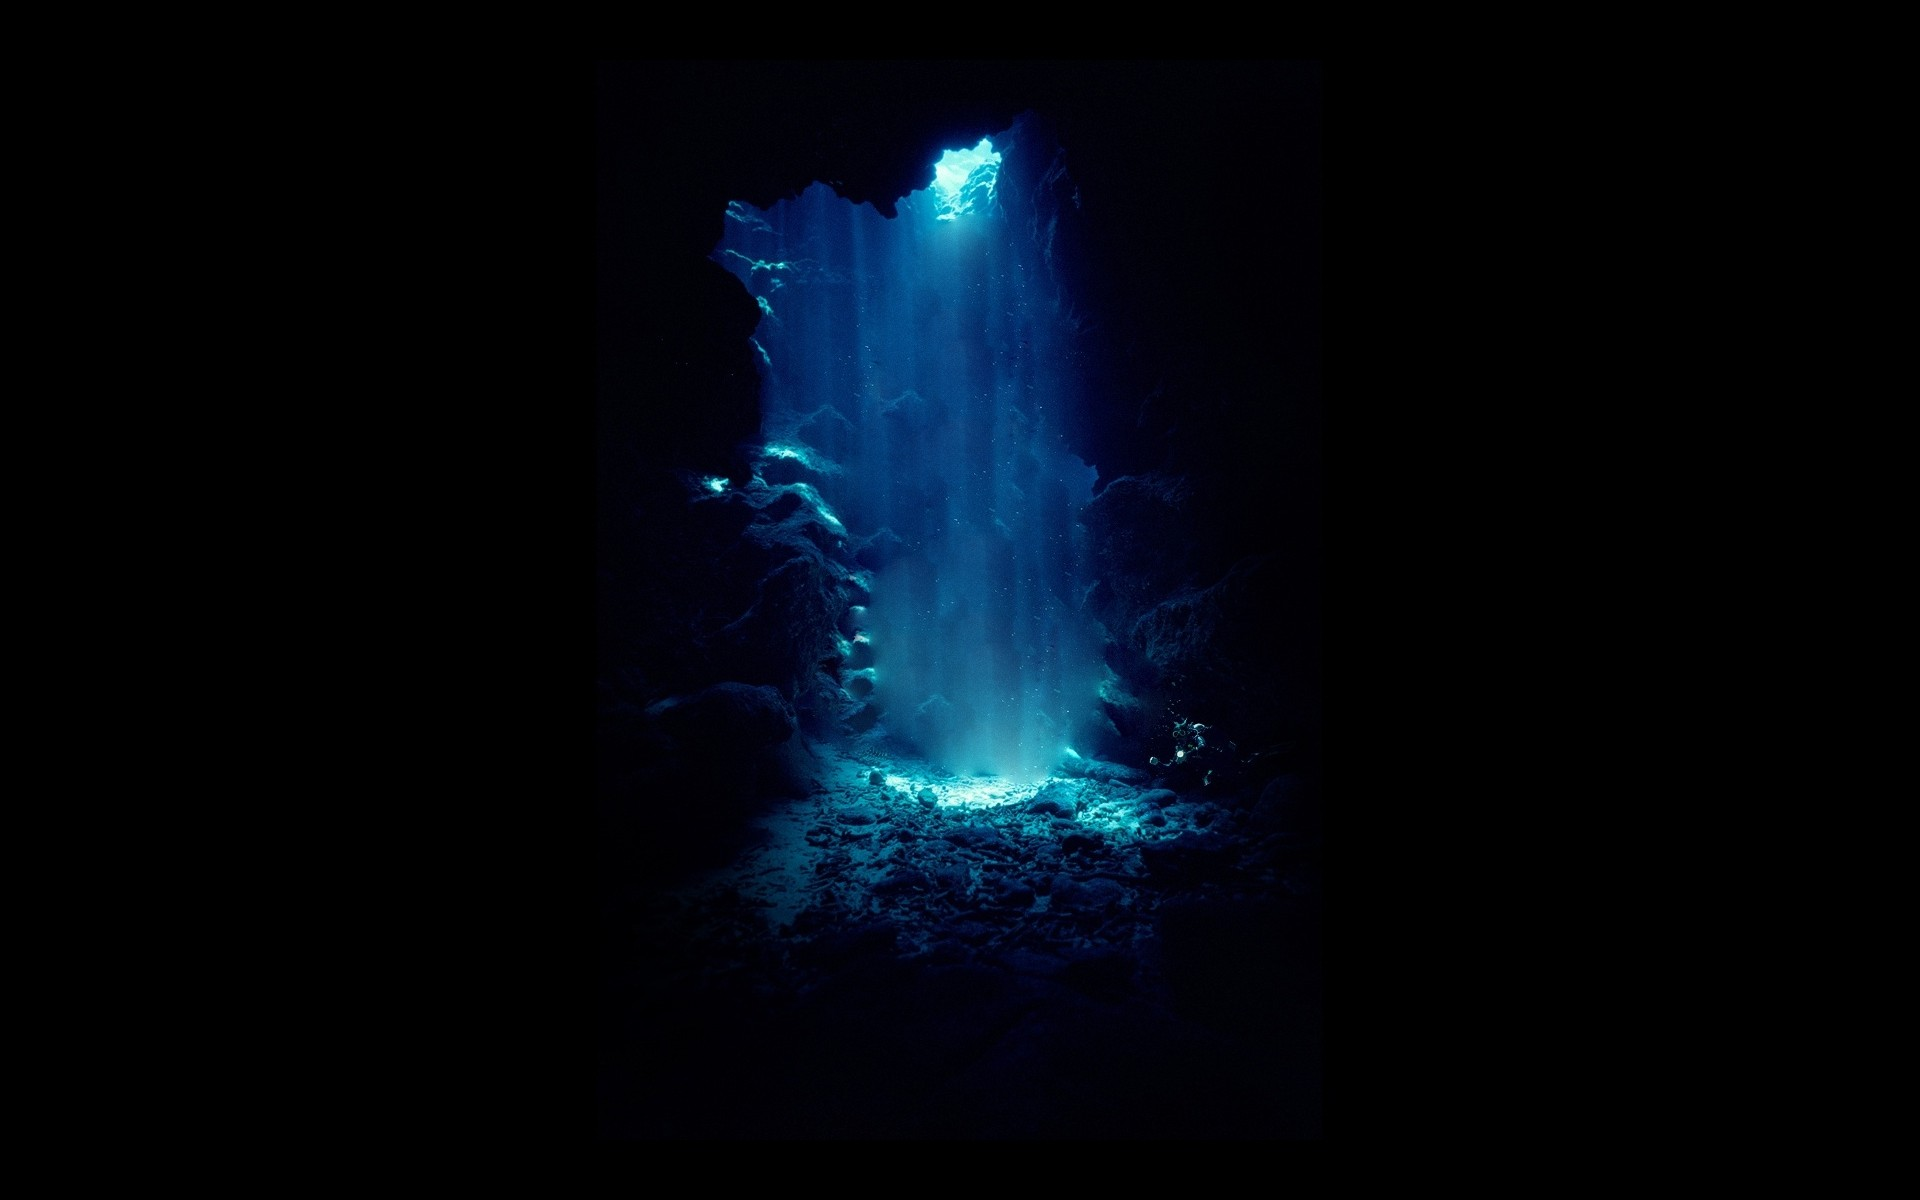 Blue light in a cave wallpapers and images   wallpapers pictures 1920x1200